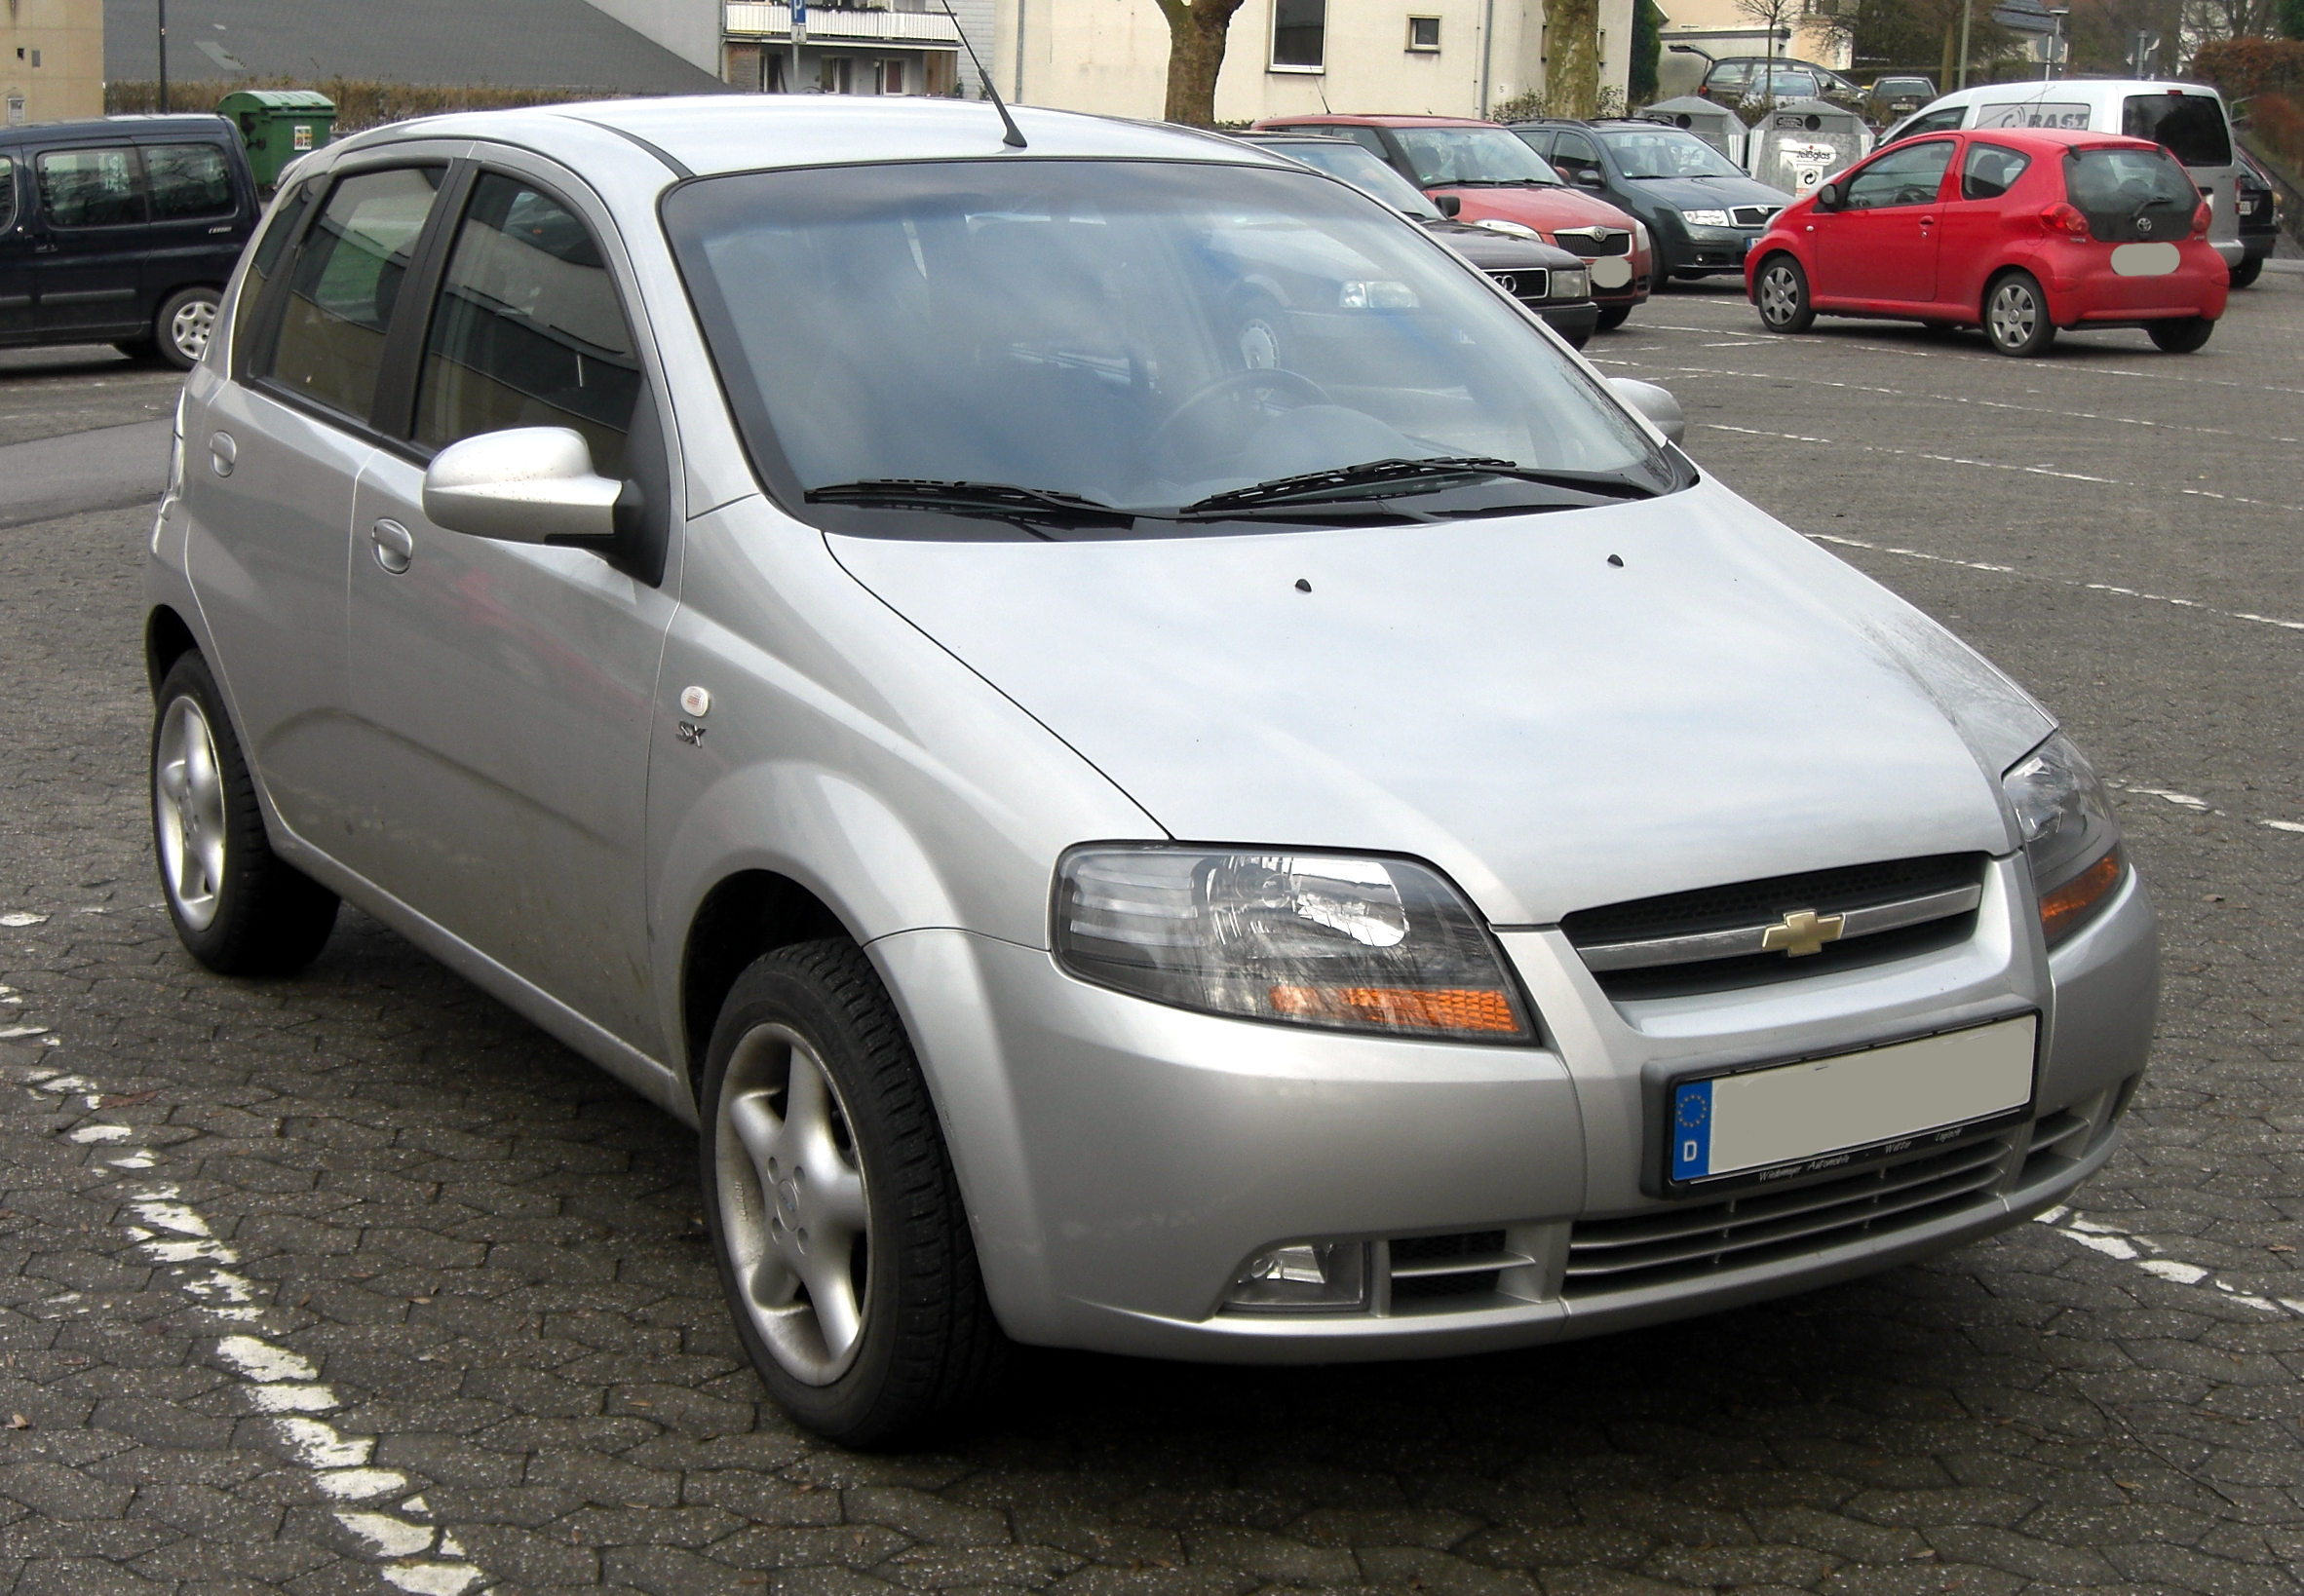 Chevrolet_Kalos_front Great Description About 2011 Chevy Aveo Recalls with Captivating Images Cars Review